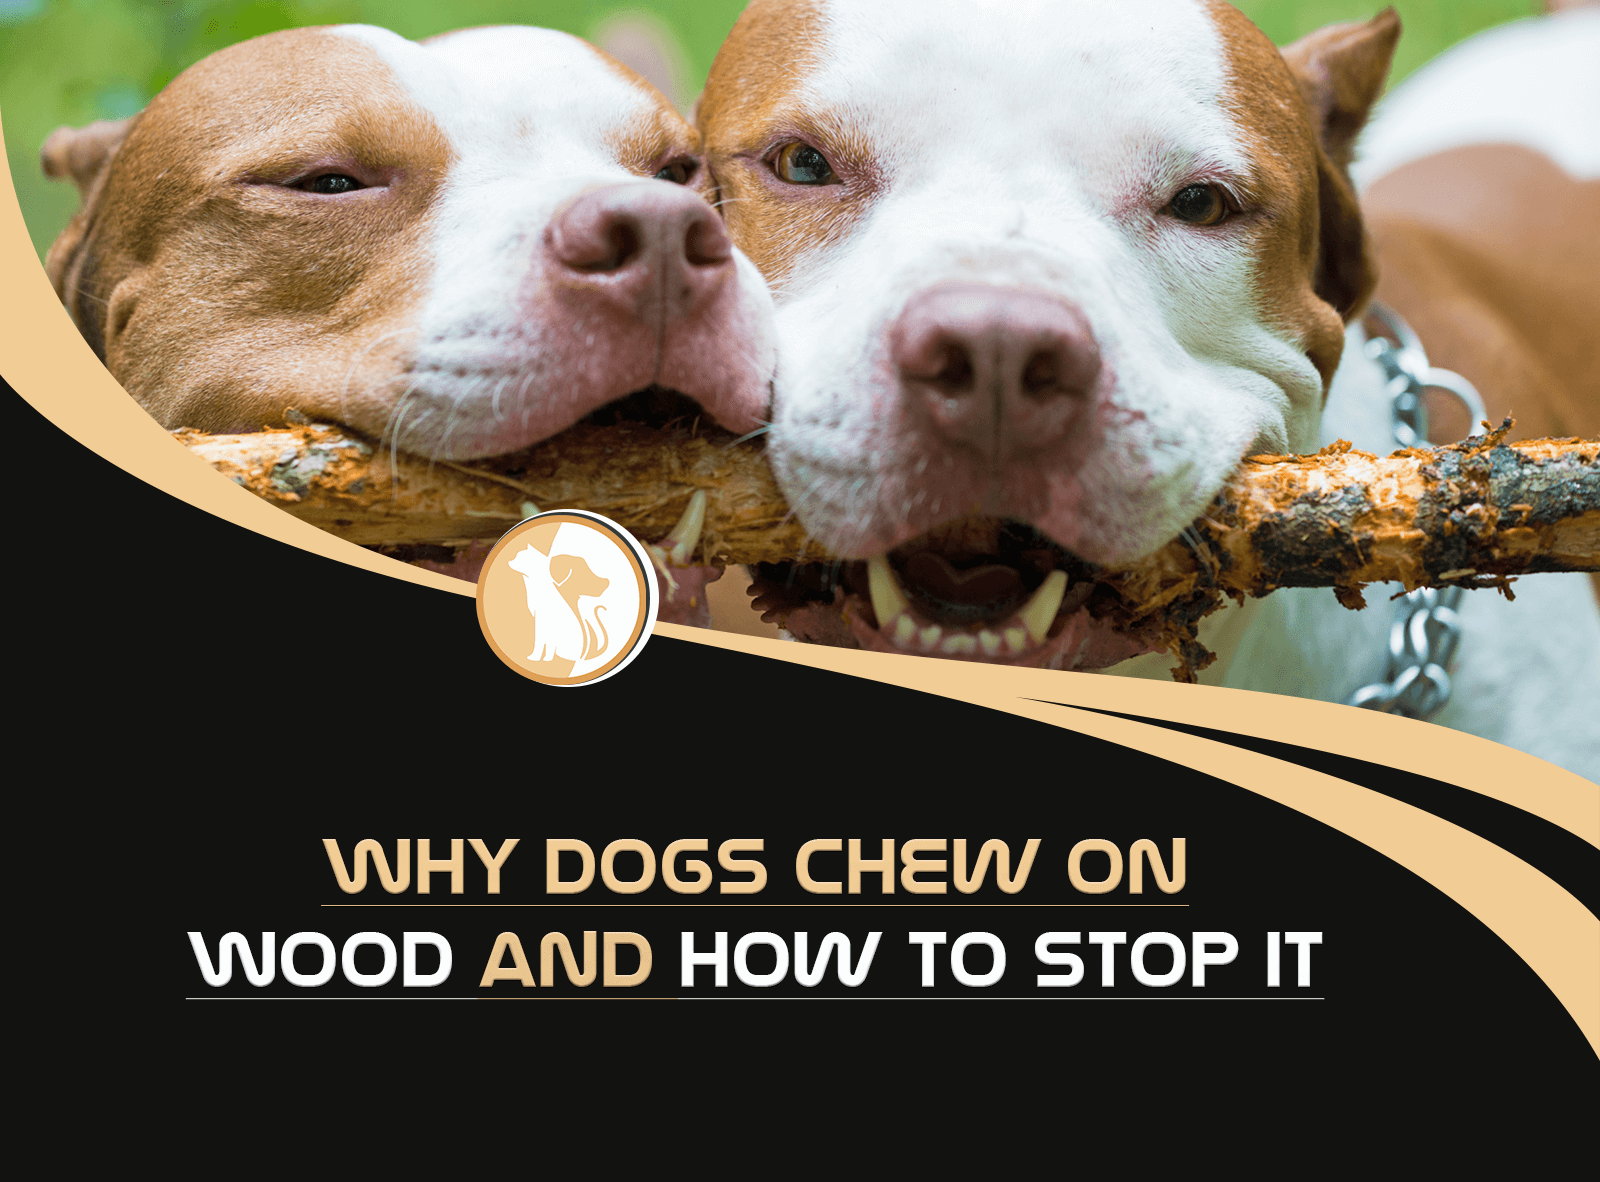 Reasons Why Dogs Chew On Wood And How To Stop It